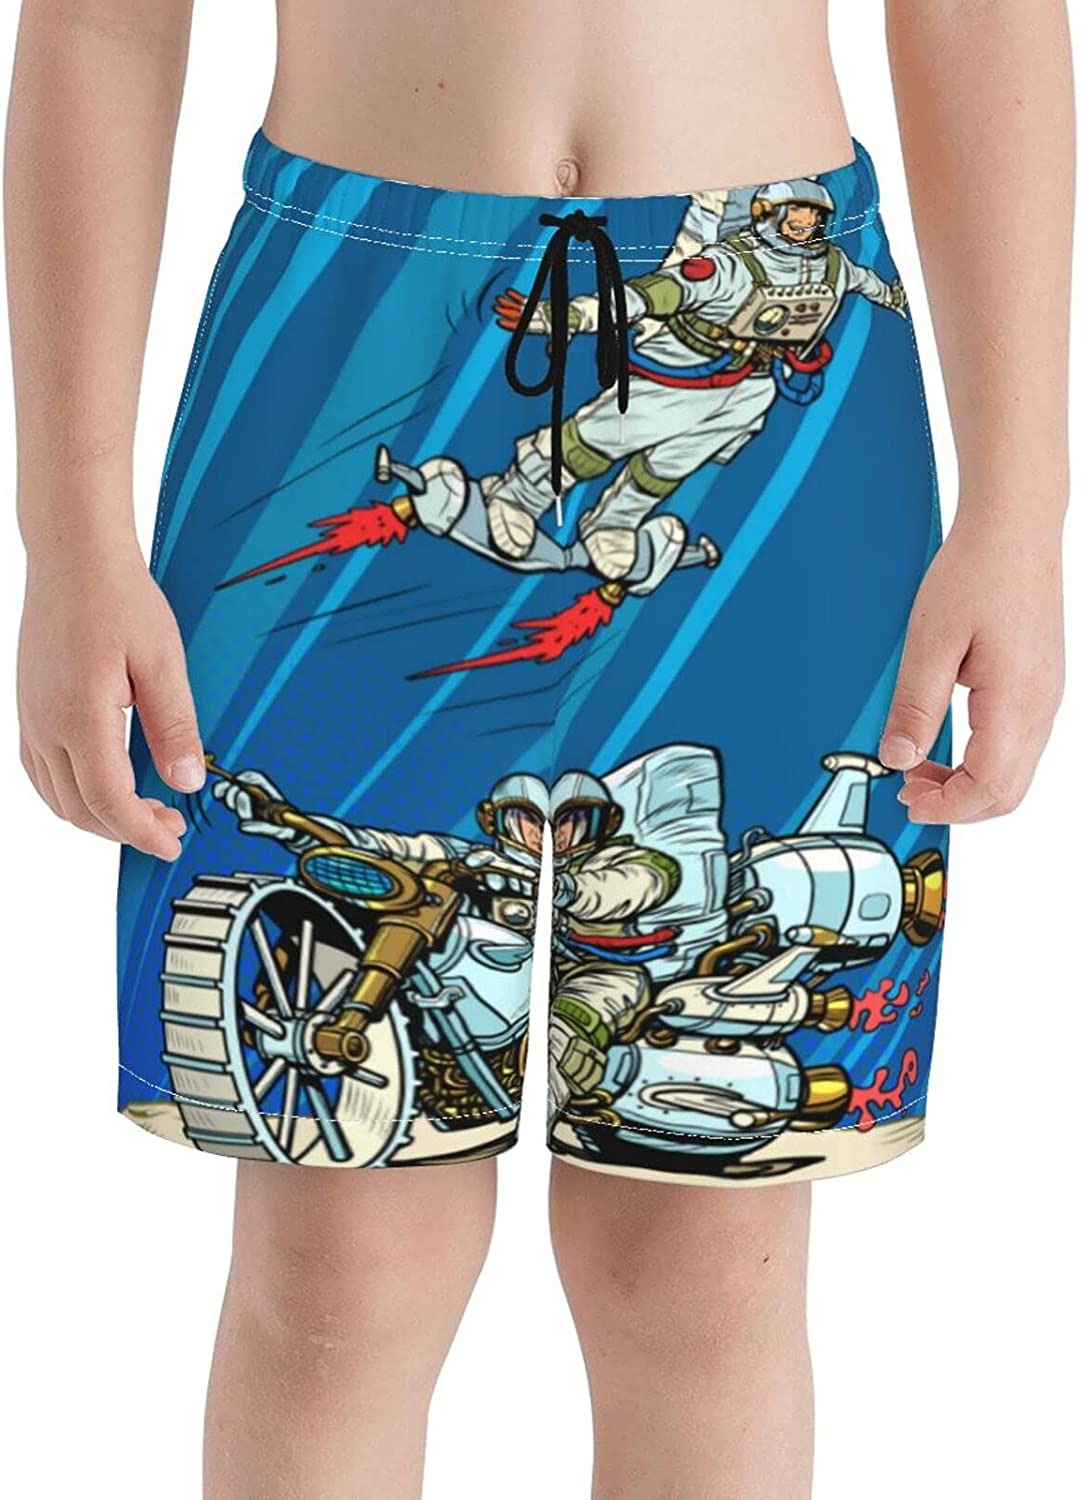 Mcdd Printed Men's Swim Trunks Board Online limited product Dry Ranking TOP17 Sports Quick Trunk